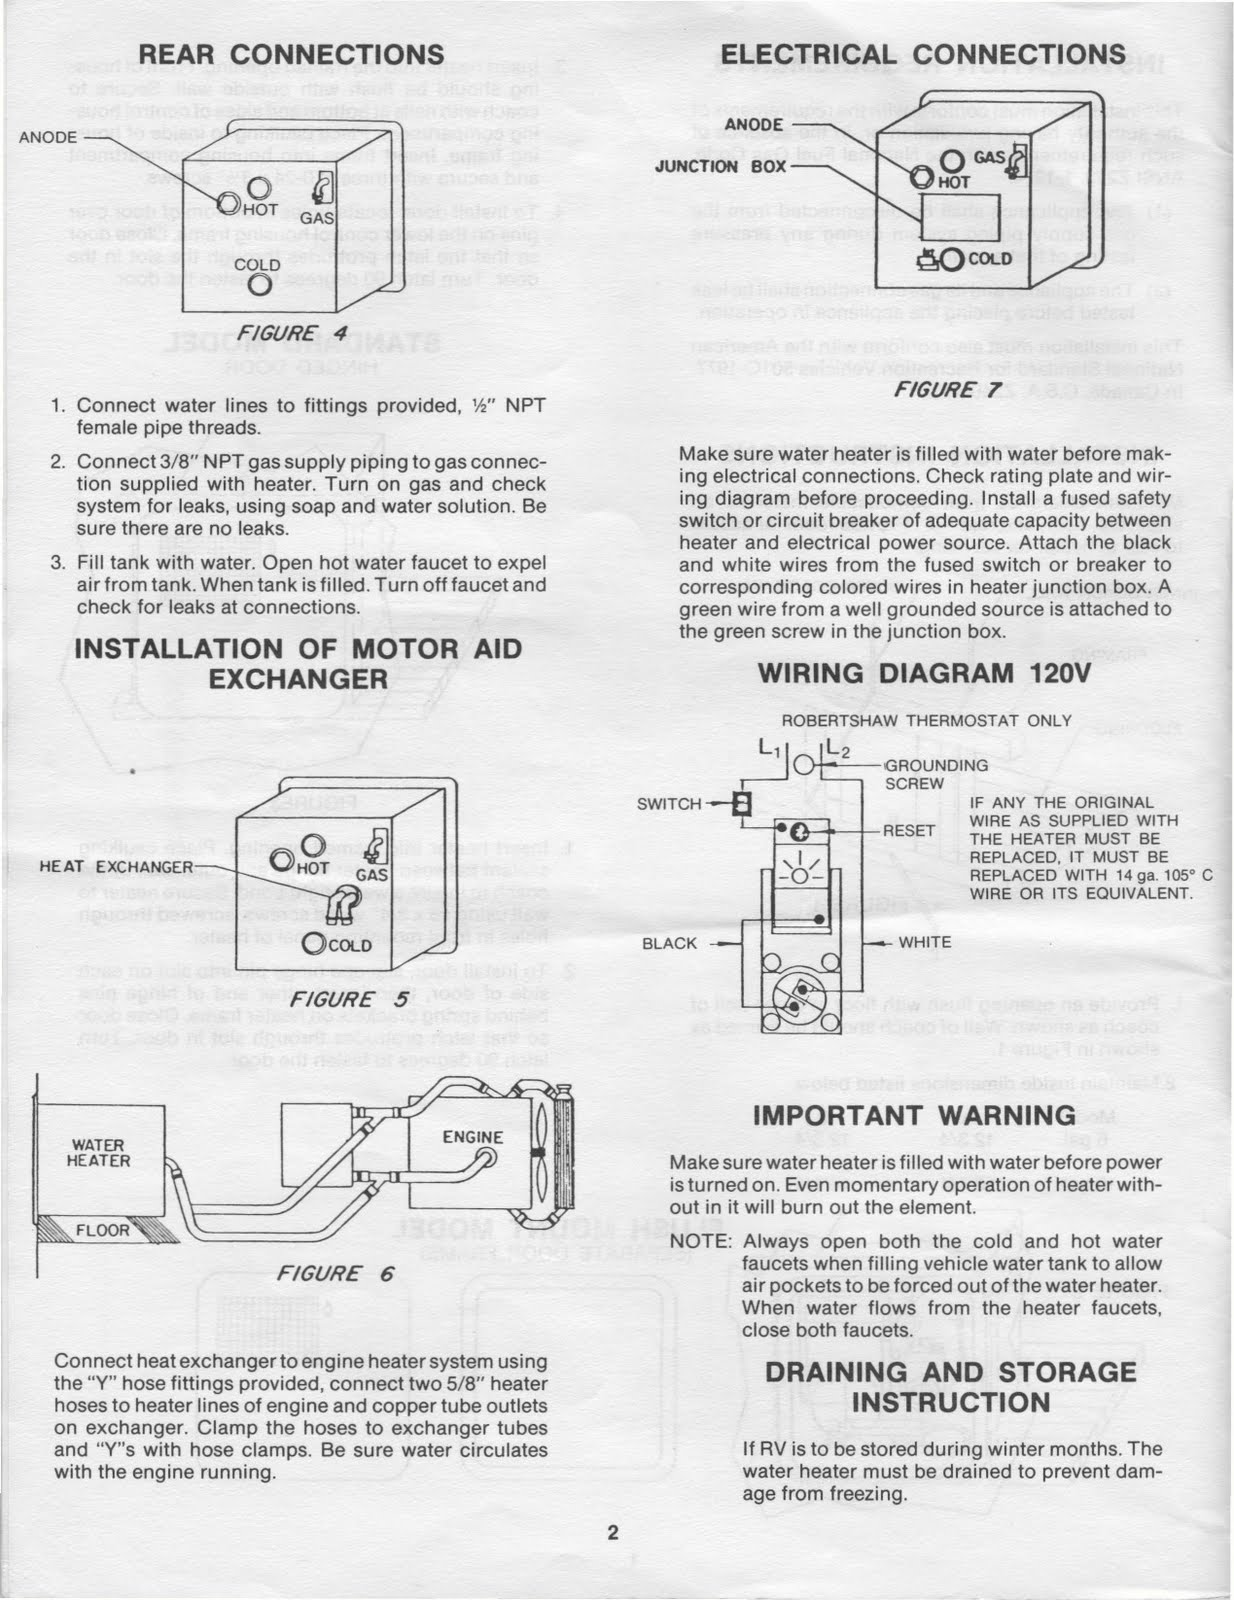 1848 wiring diagram for 79 dodge motorhome 1976 dodge motorhome rh diagram stockimages us [ 1234 x 1600 Pixel ]